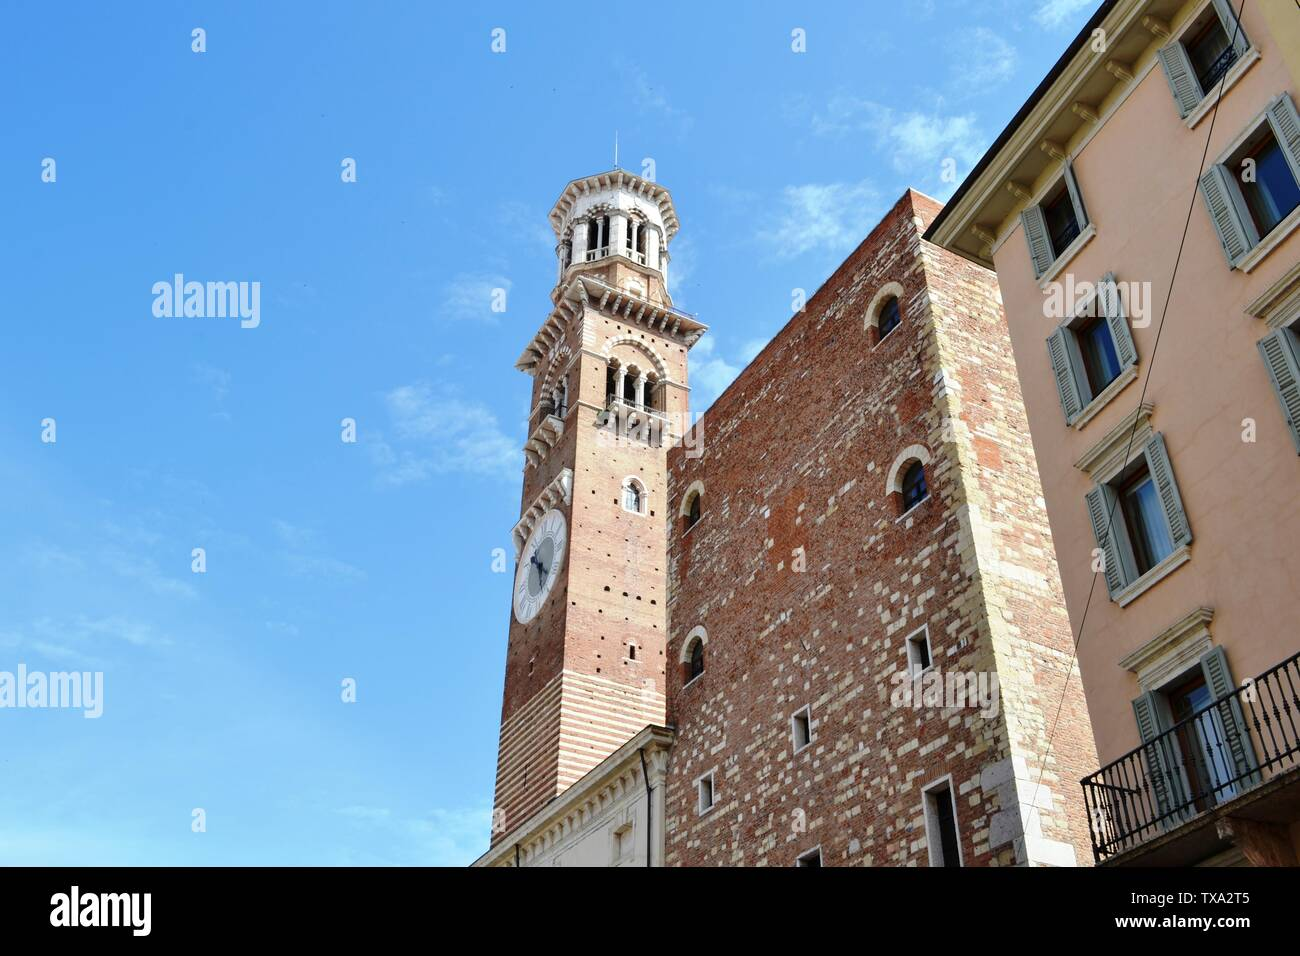 Close-up view to the dei Lamberti medieval tower with clock of the Palace della Ragione in Verona. Stock Photo